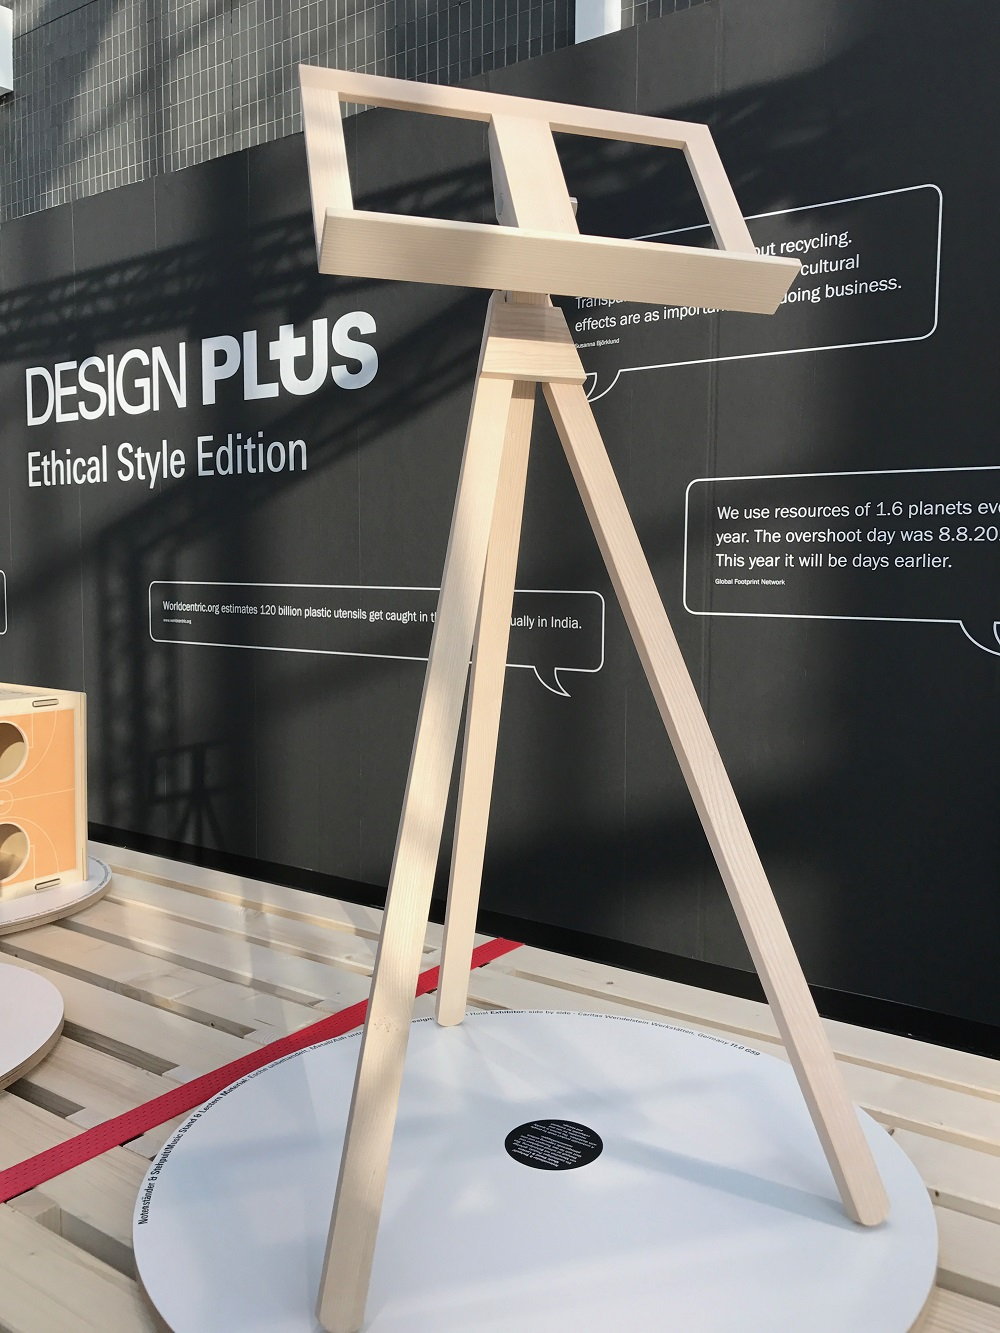 6 frankfurter_messe_ambiente_design_lus_ethical_style_forelements_blog